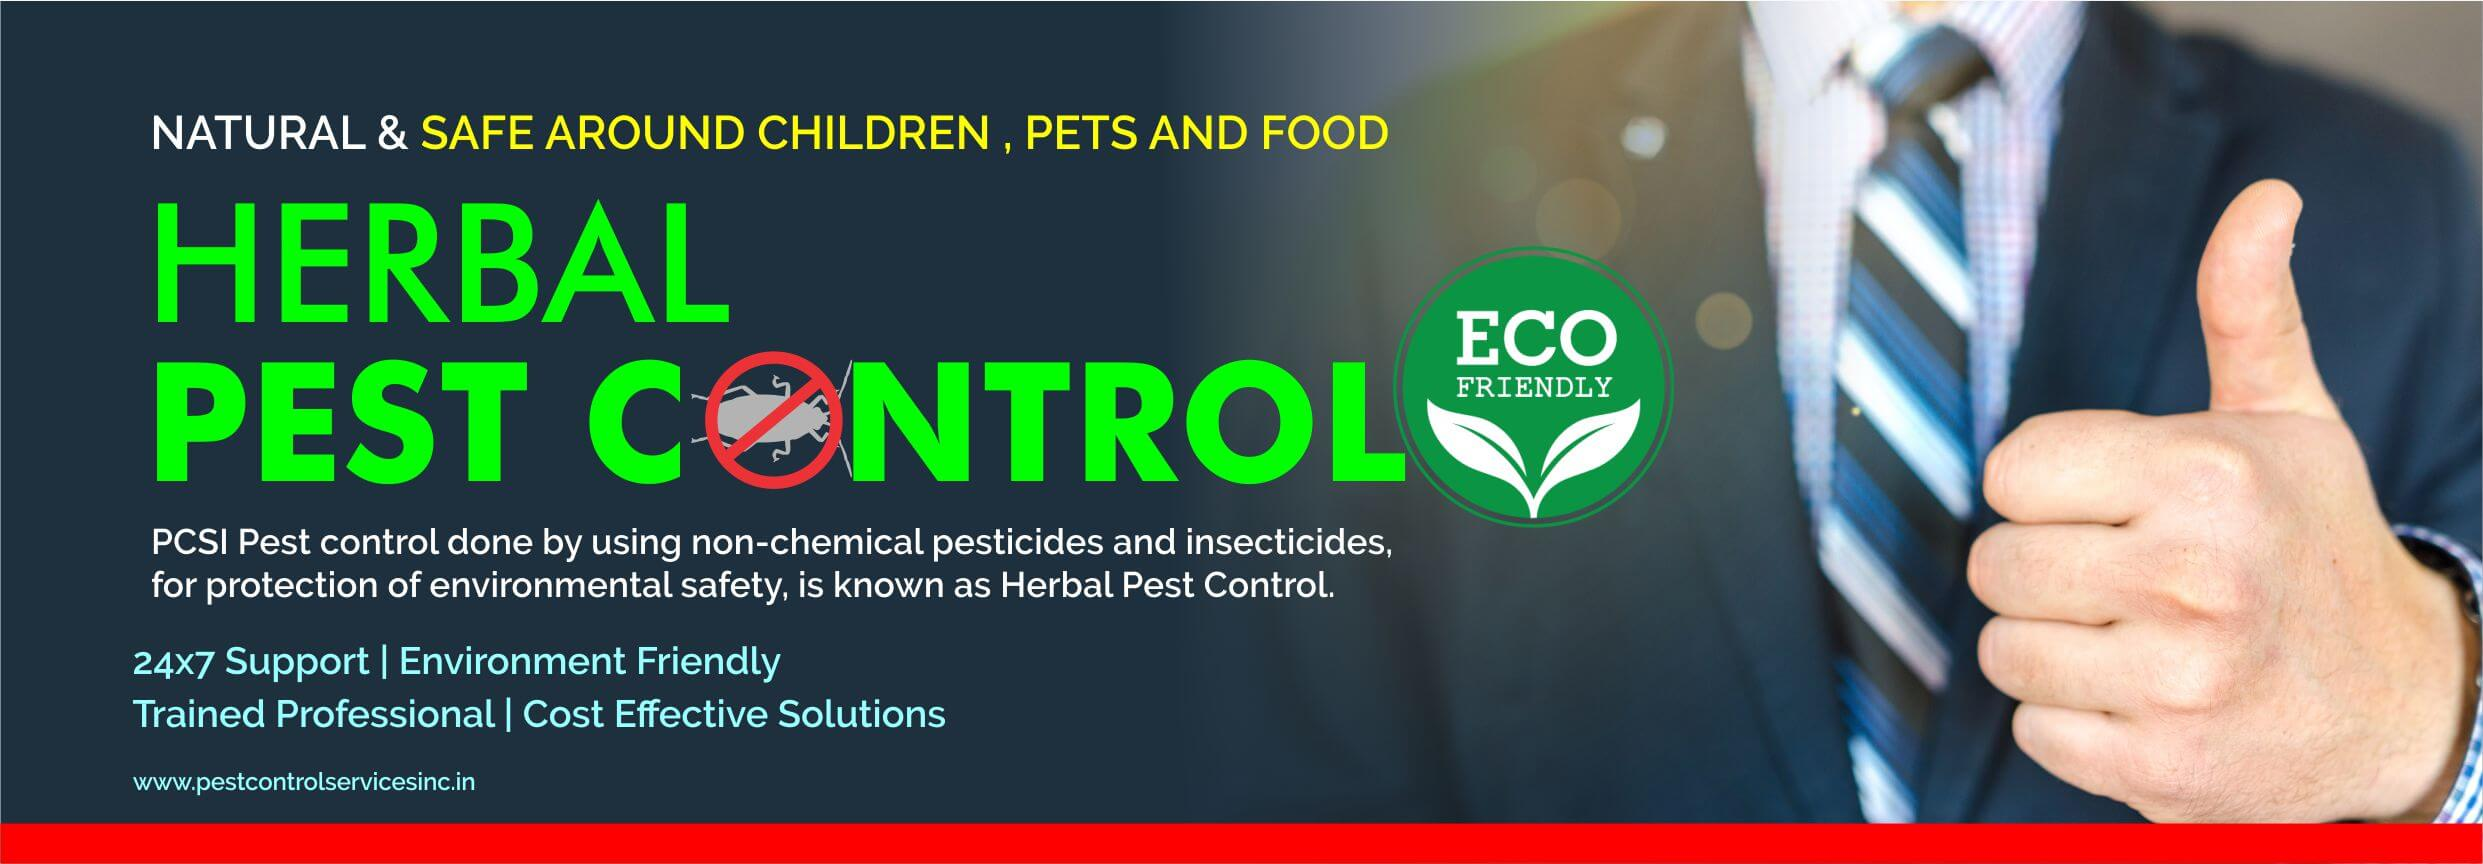 Herbal Pest Control Service in Indore